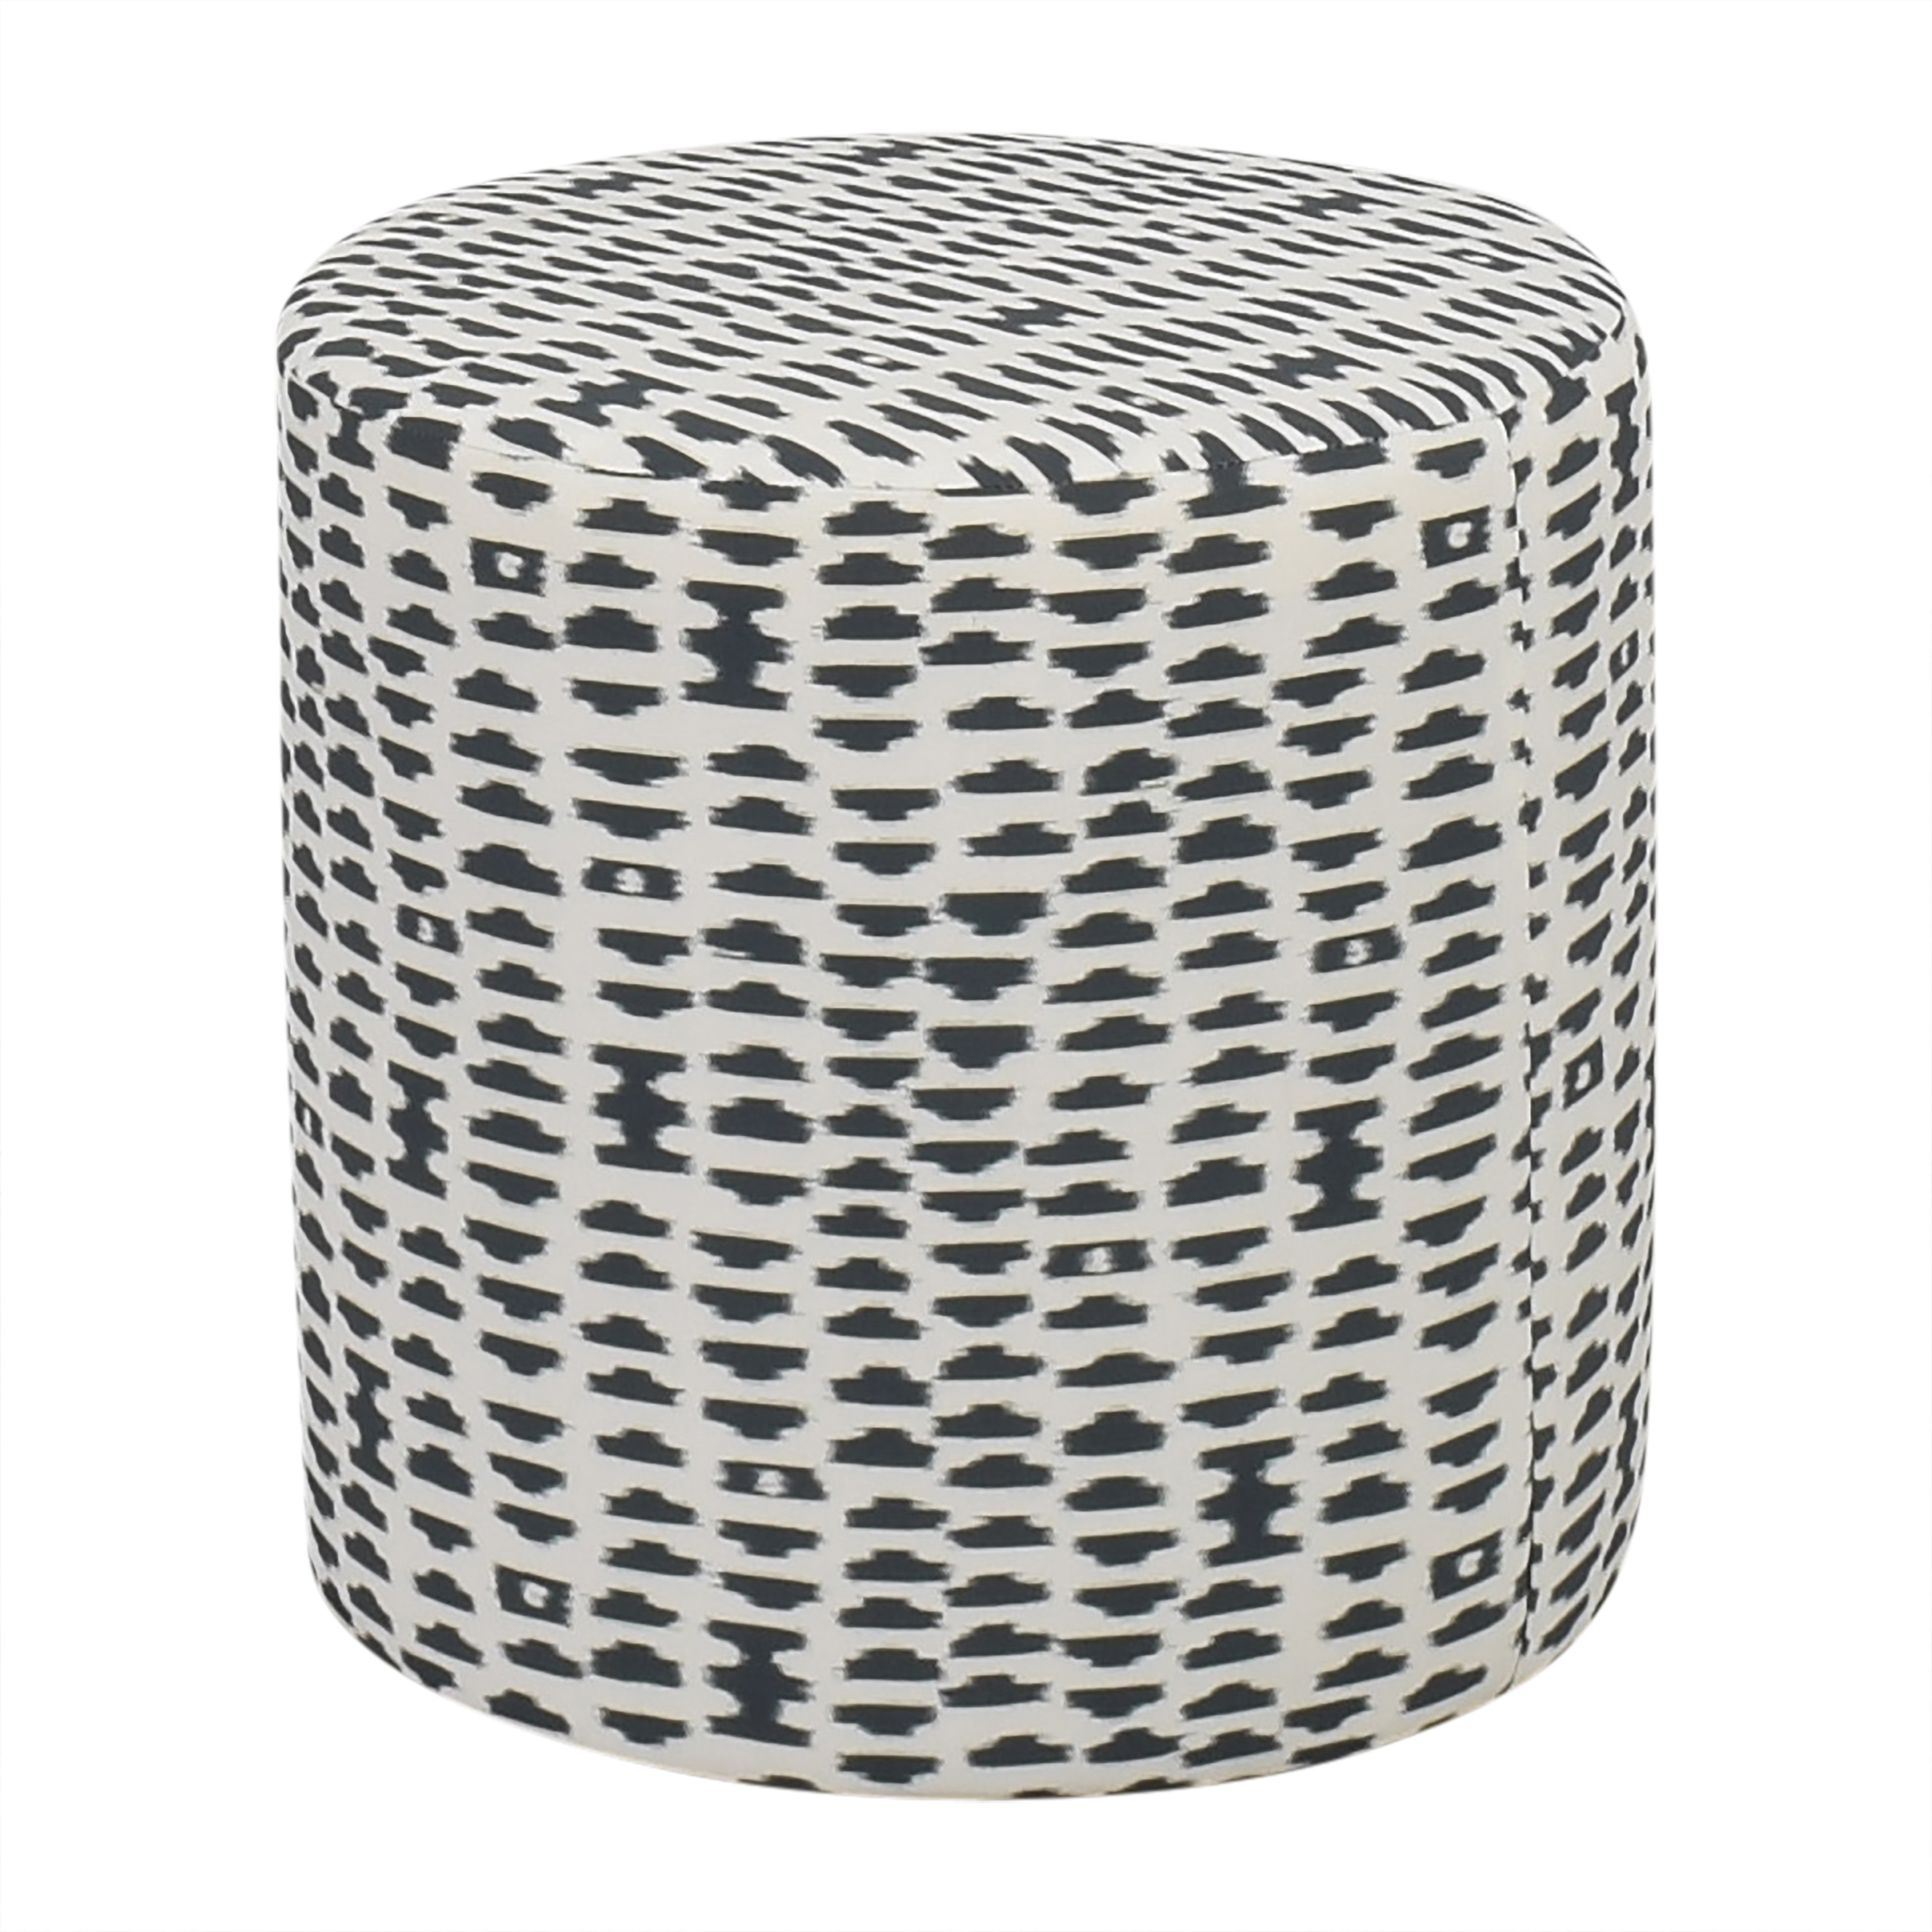 The Inside The Inside Odalisque Drum Ottoman Chairs